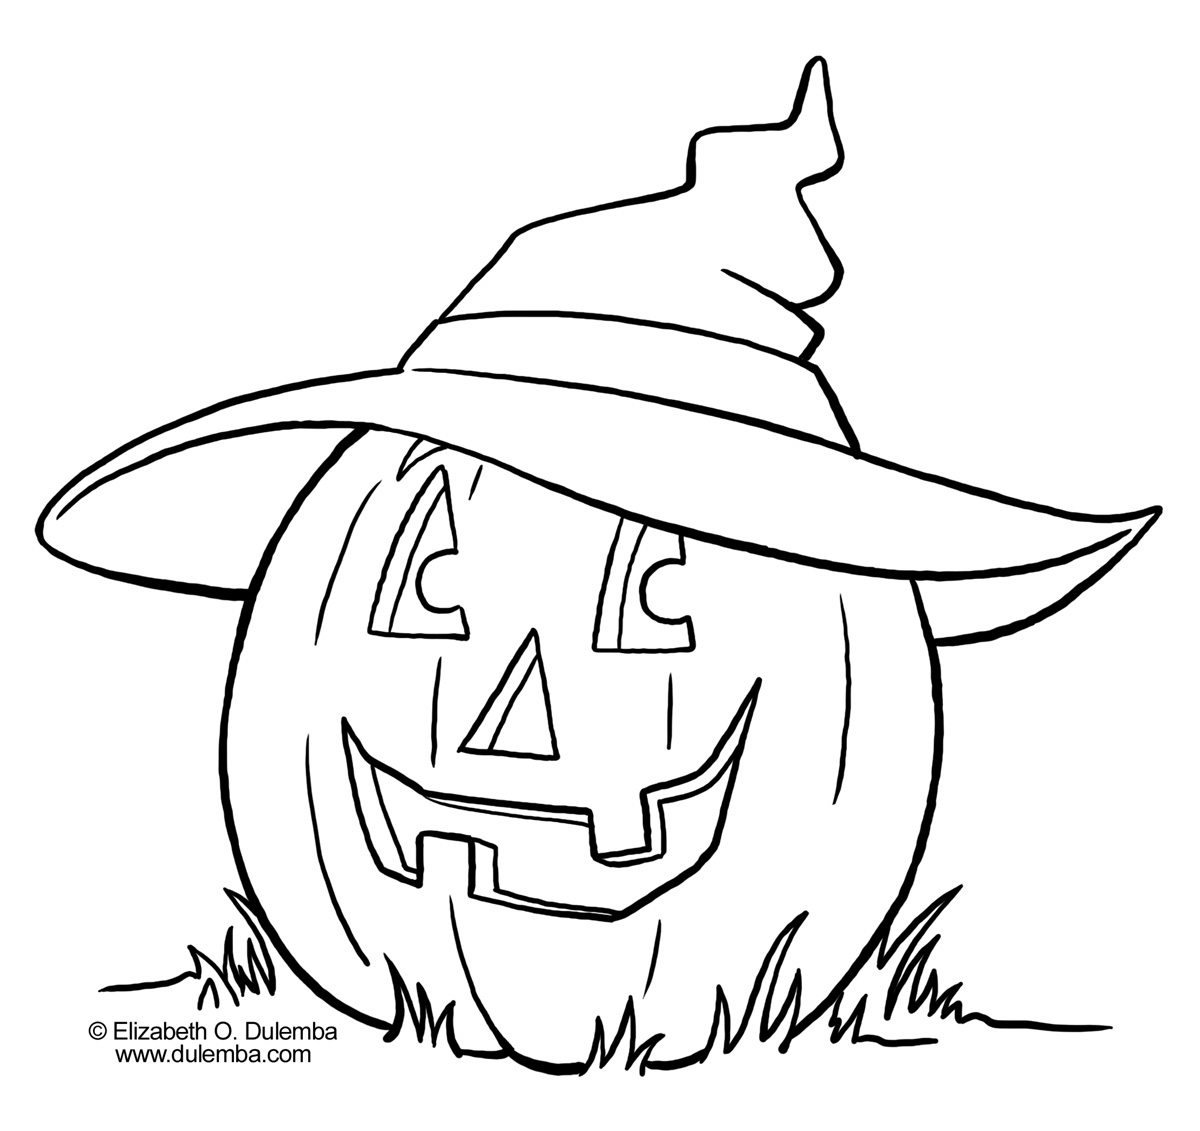 coloring page for halloween - transmissionpress halloween coloring pictures